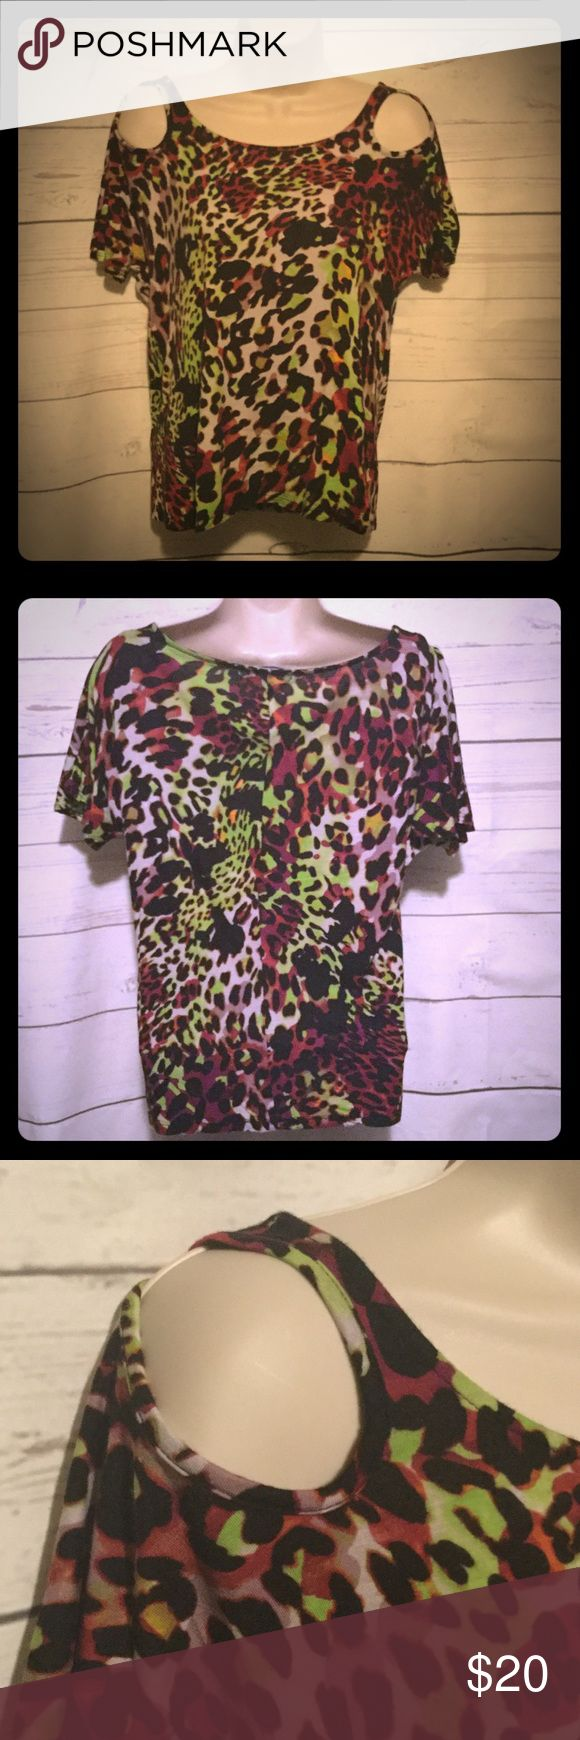 Leopard Tie Dye Open shoulder top NWOT The print is a neat purple, green, and black 'leopardy' tie dye. It is designed to sort of just hang on you. Looks great with cut off shorts or skinny jeans, never worn, just took the tags off, Charlotte Russe Tops Tees - Short Sleeve